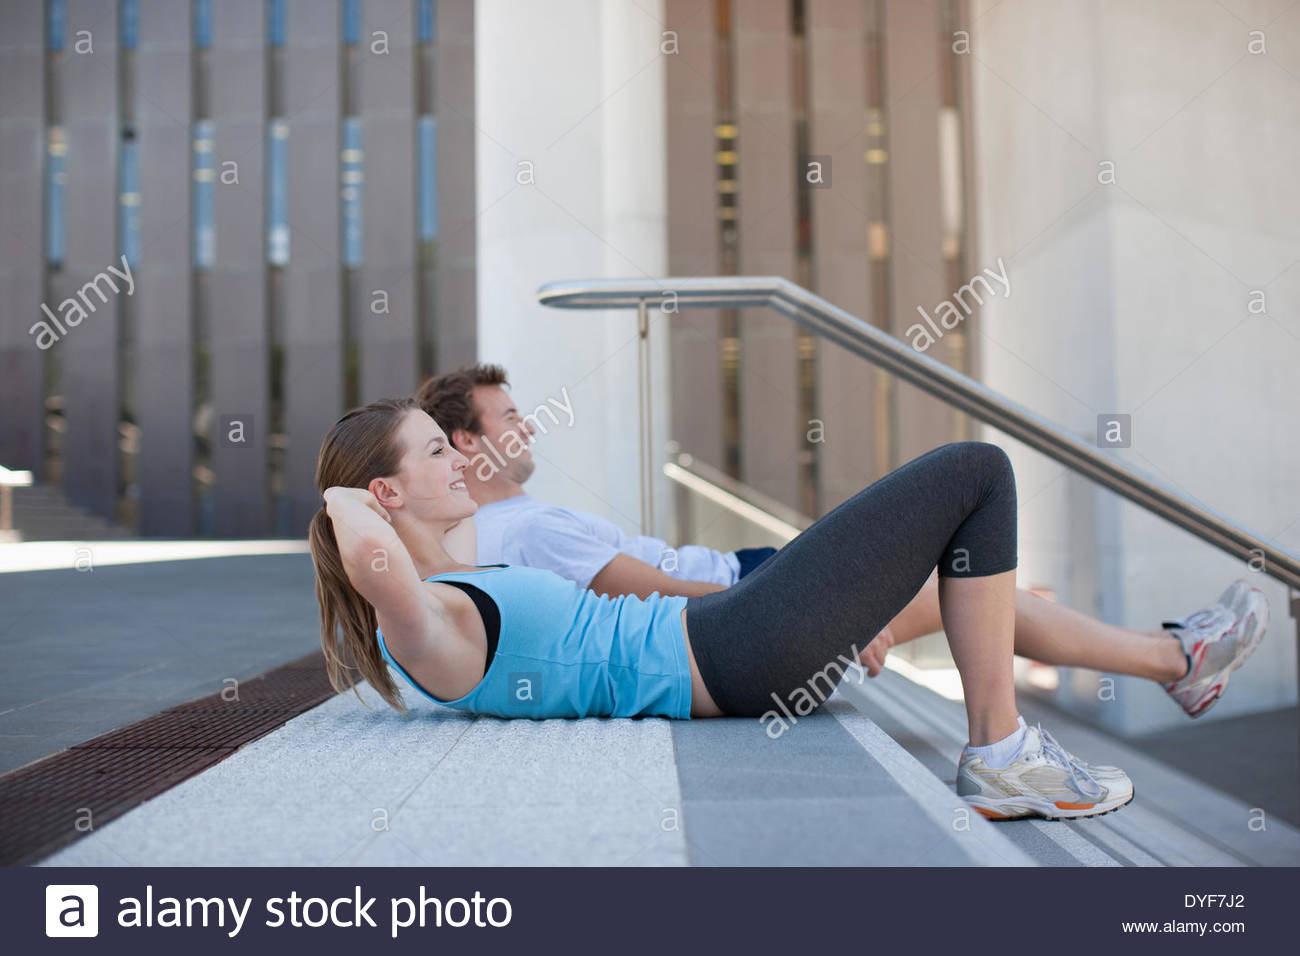 Couple resting after exercise - Stock Image